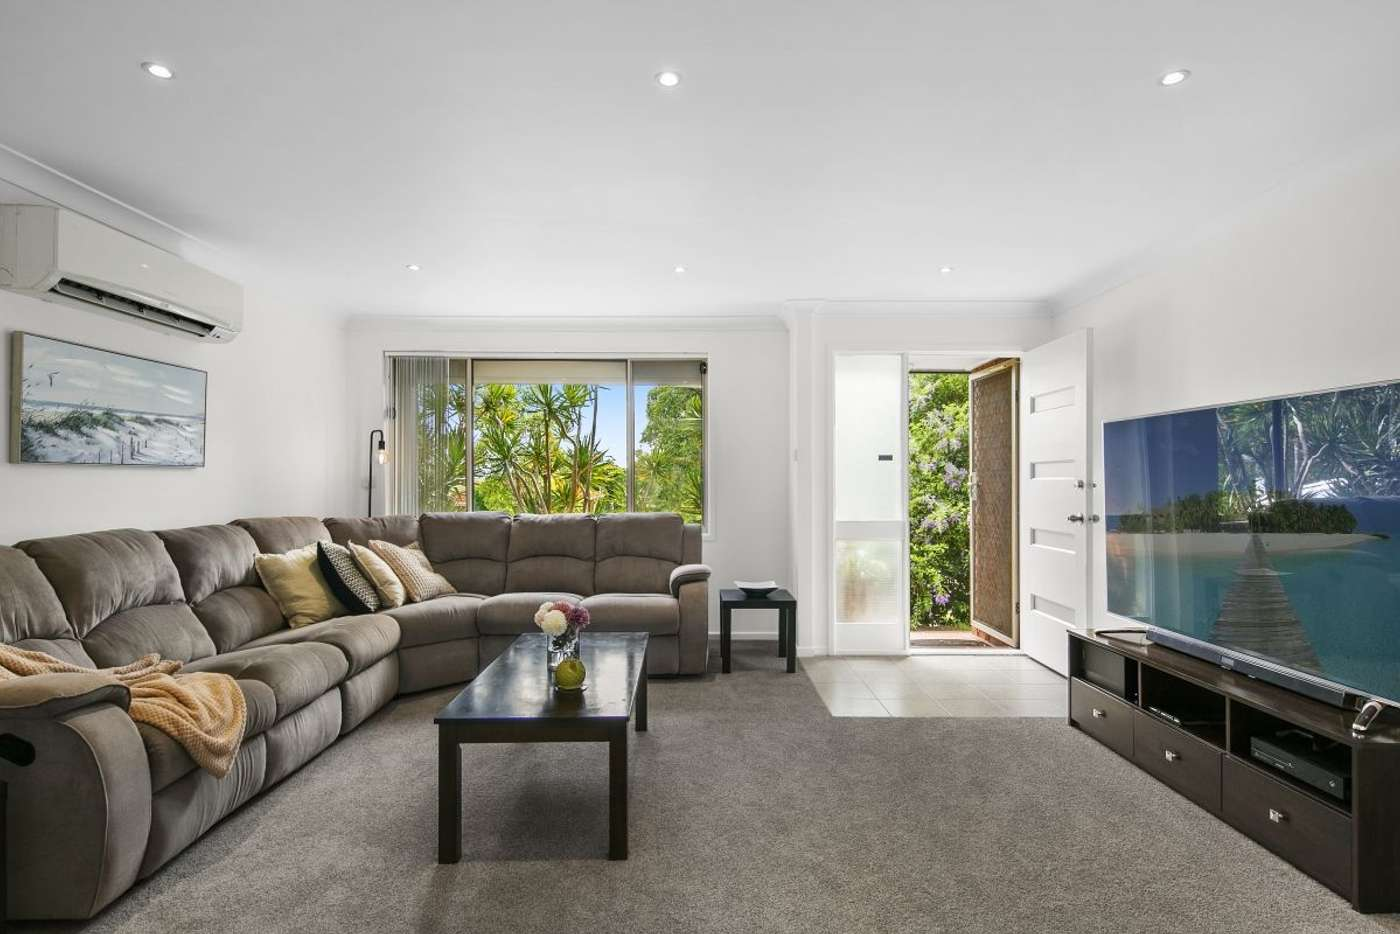 Fifth view of Homely house listing, 222 Maryland Drive, Maryland NSW 2287